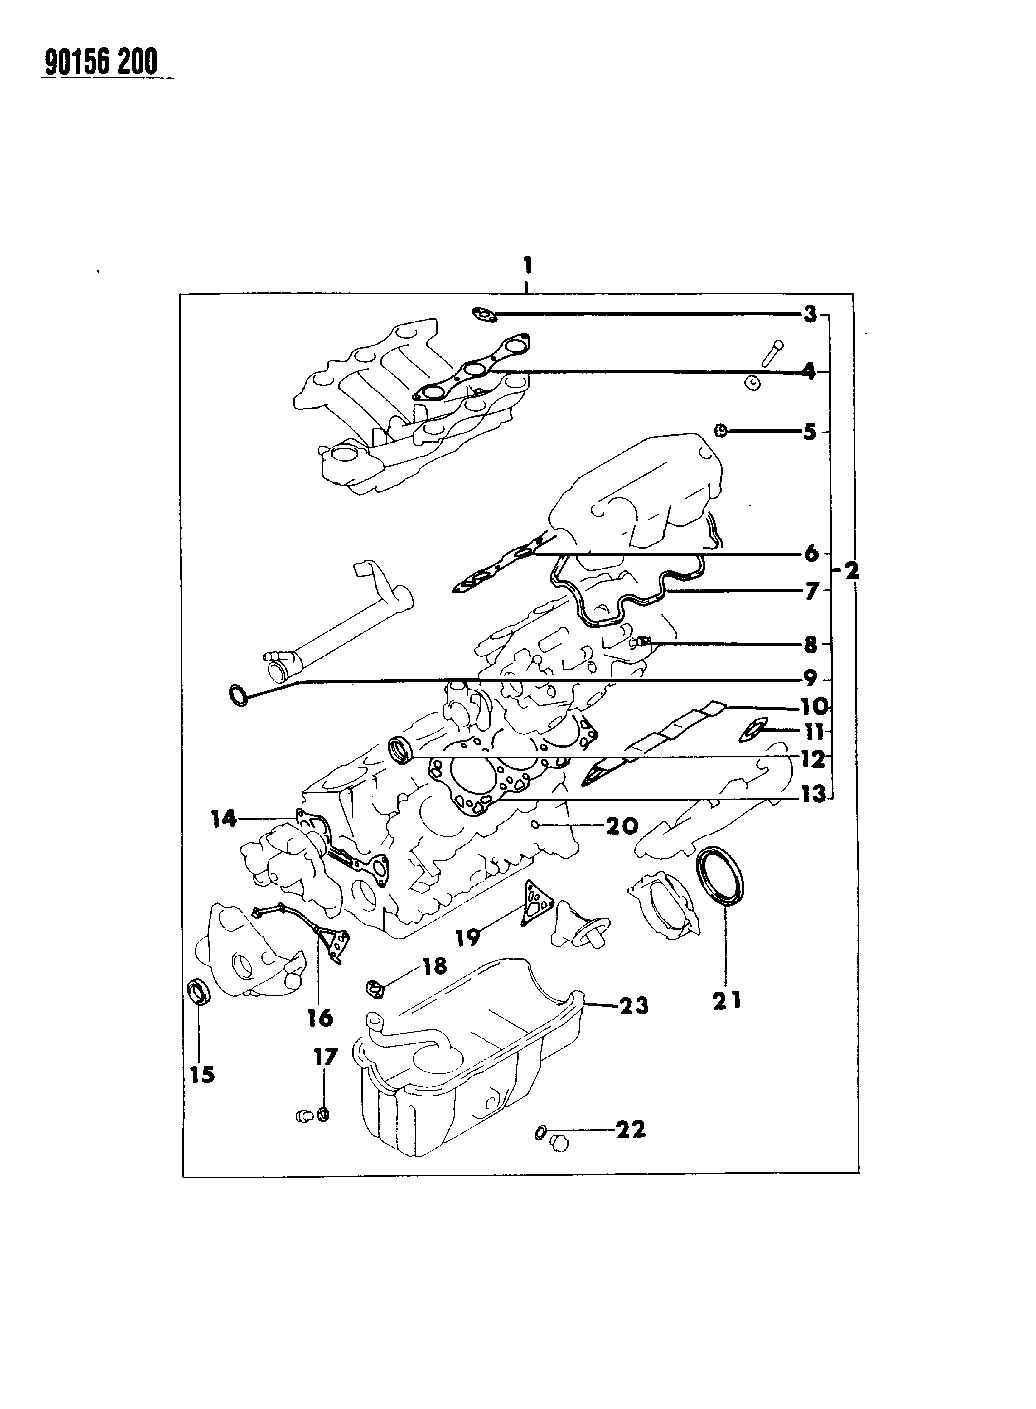 Plymouth Grand Voyager Gasket  Crossover Pipe  Efa